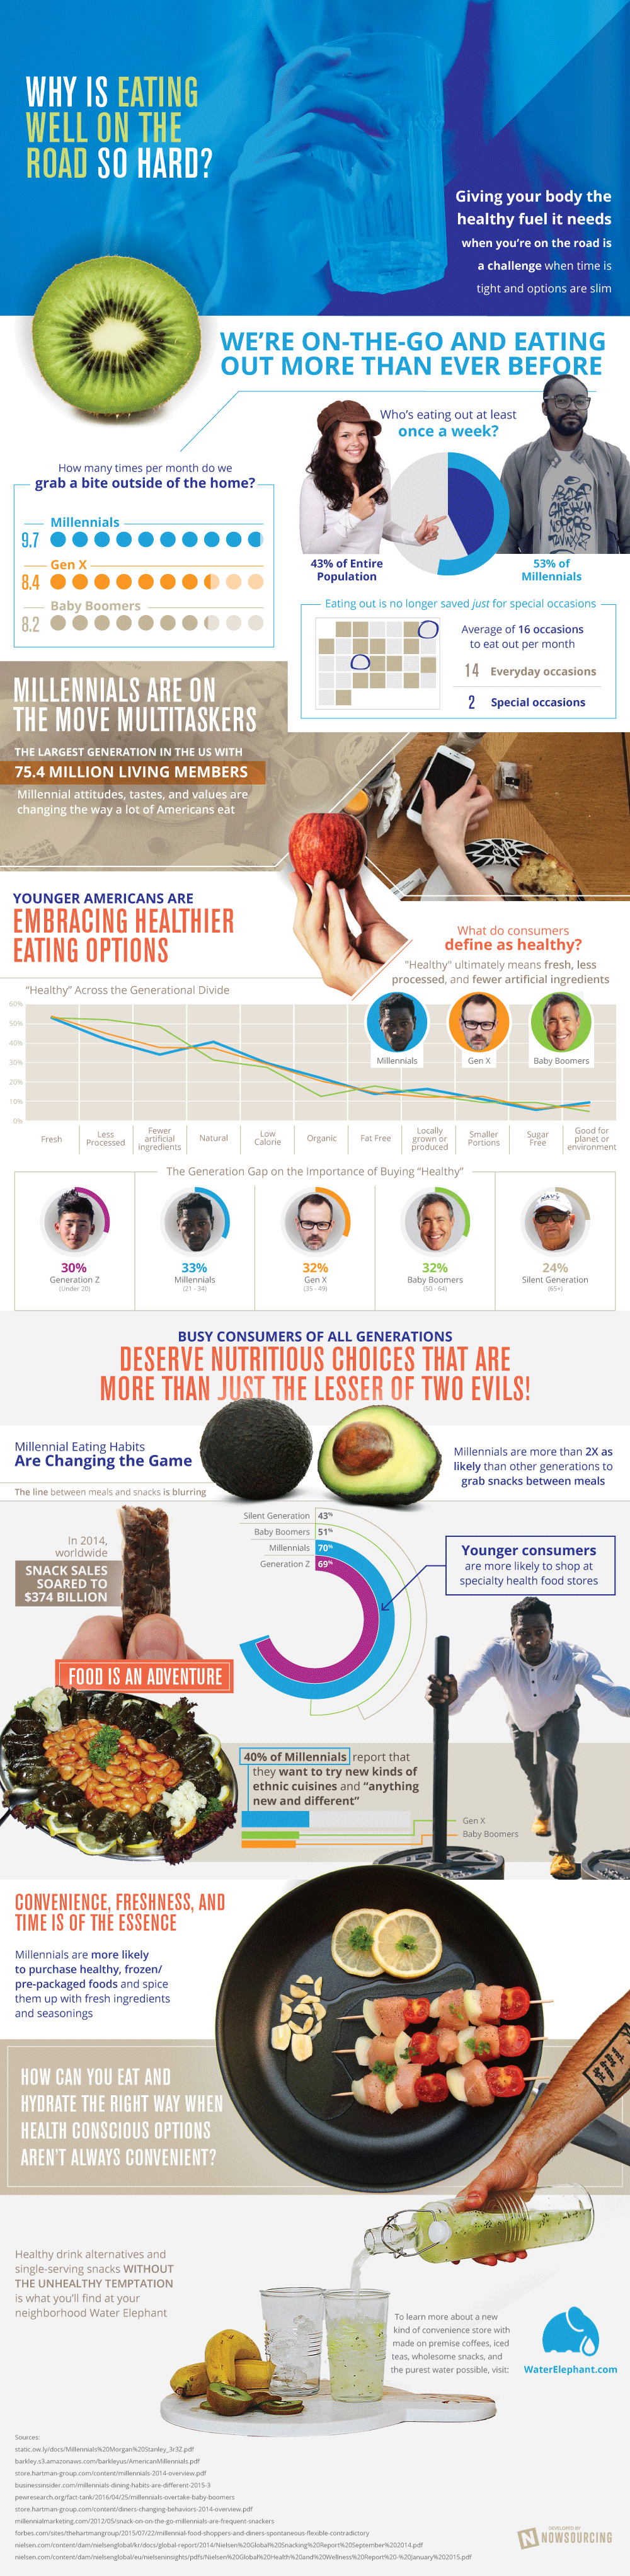 Why Is So Hard To Embrace Healthy Eating? - Infographic